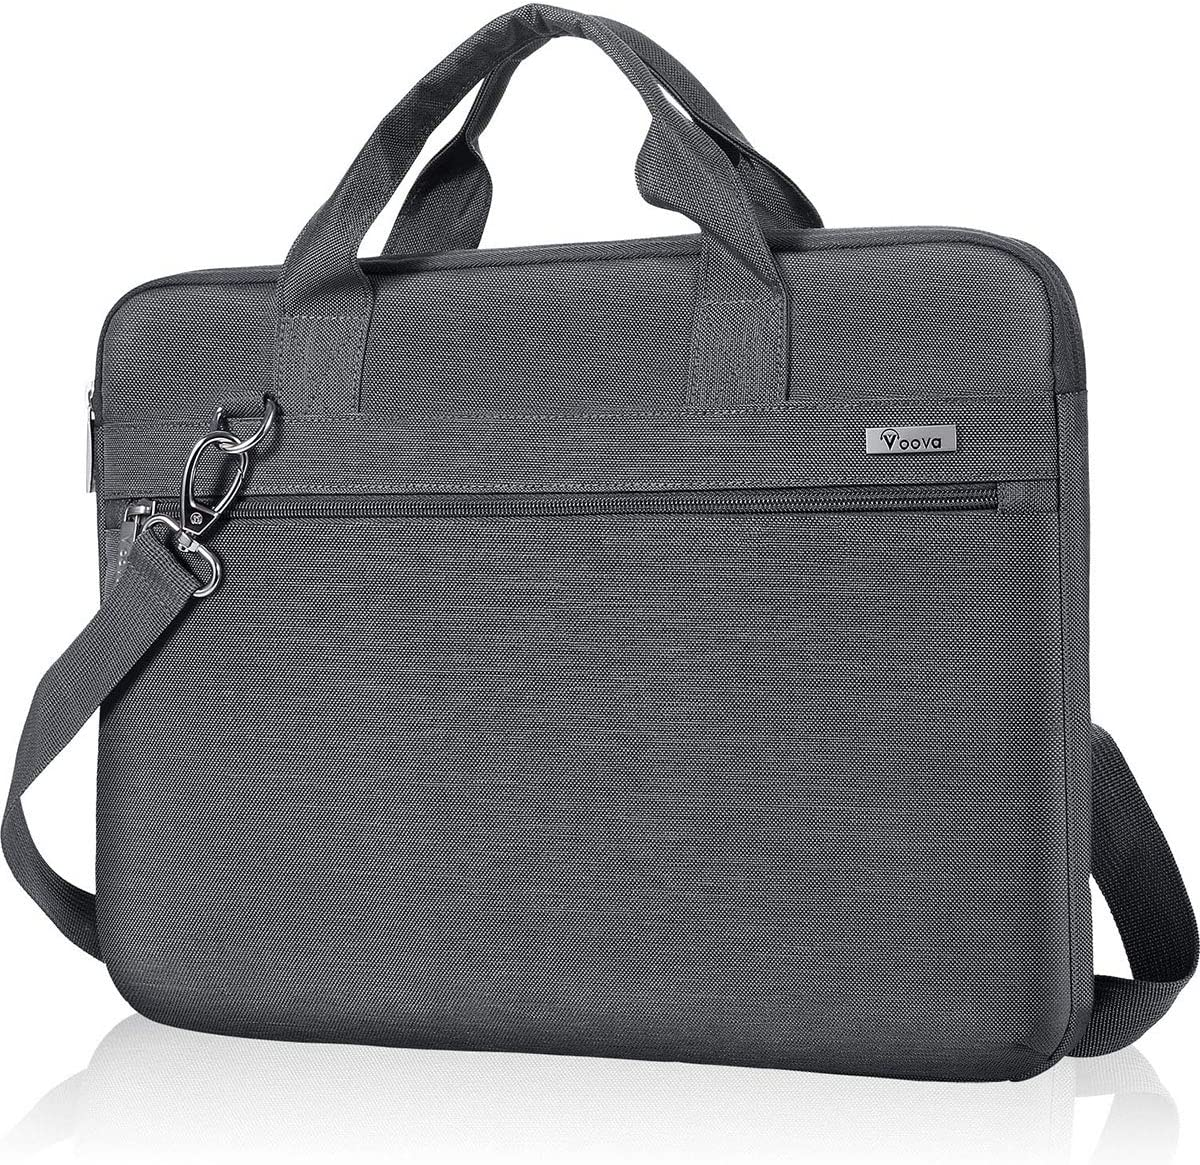 Voova Laptop Sleeve Shoulder Bag 14-15.6 Inch Carry Case, Upgrade Computer Messenger Briefcase Compatible with MacBook Pro 16 15, Surface Book 2 15, Asus Acer Dell Hp Chormebook with Organizers, Grey